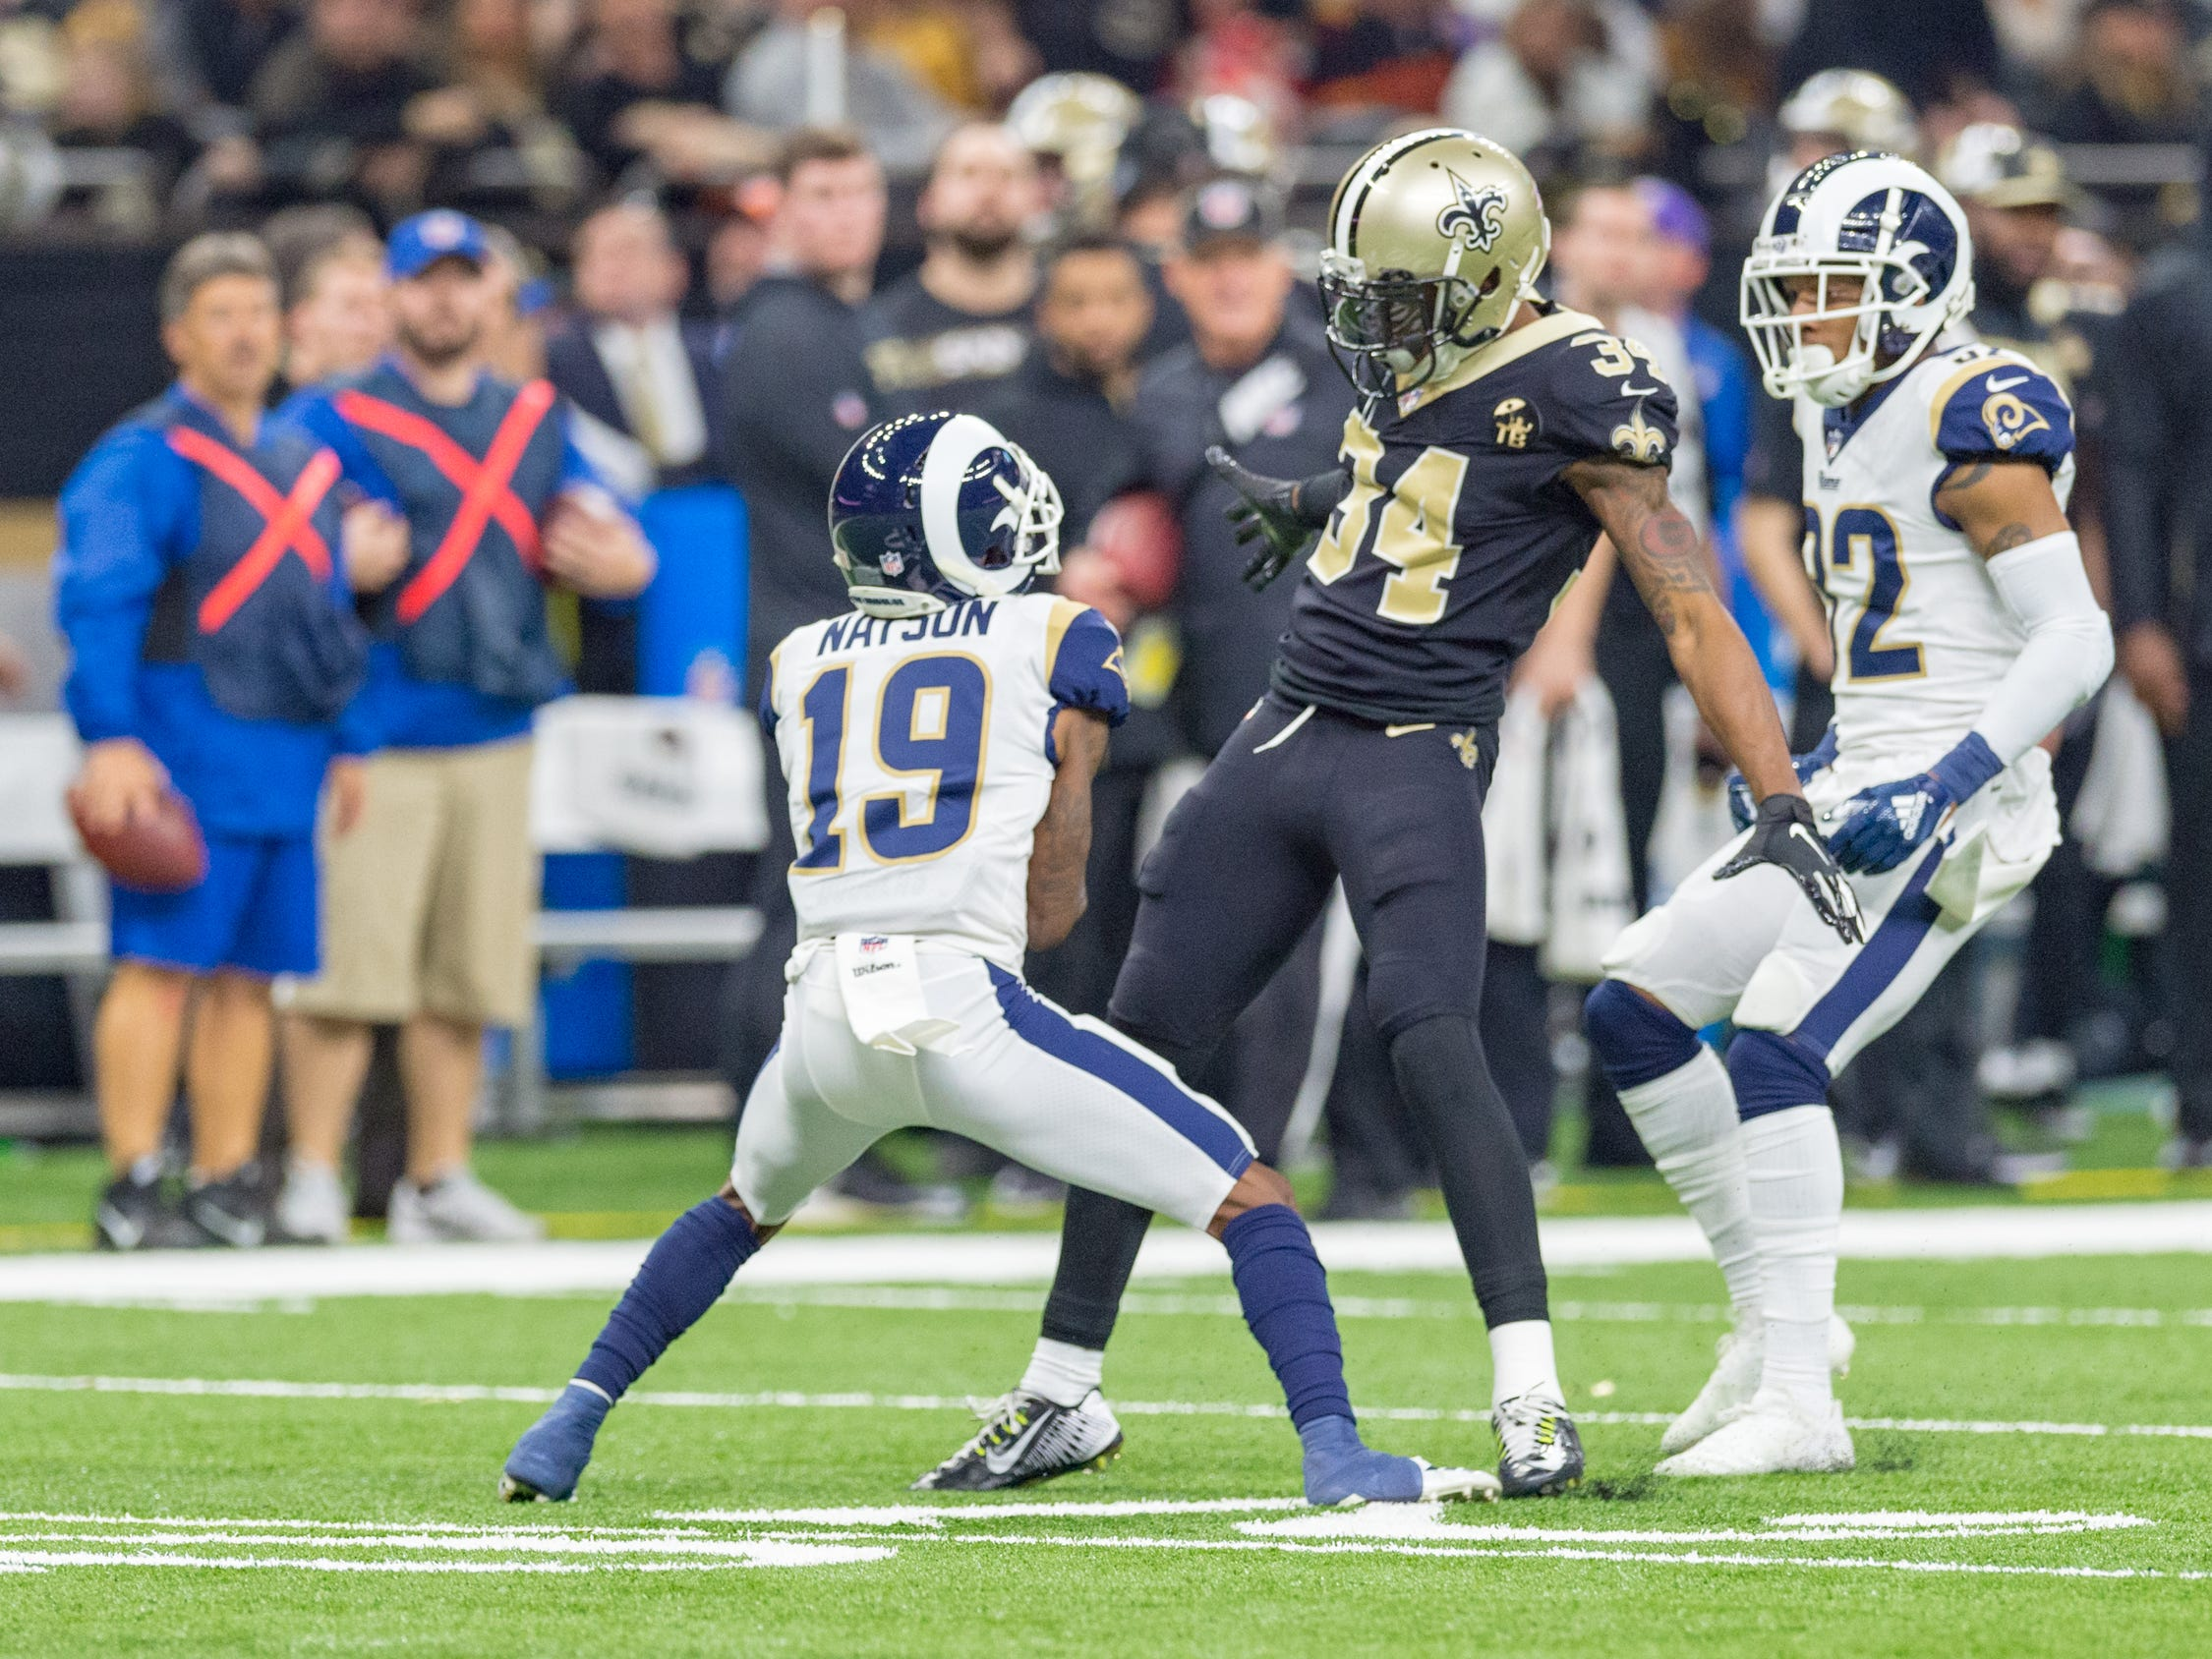 NFC Championship playoff football game between the New Orleans Saints and the Los Angeles Rams at the Mercedes-Benz Superdome in New Orleans. Sunday, Jan. 20, 2019.